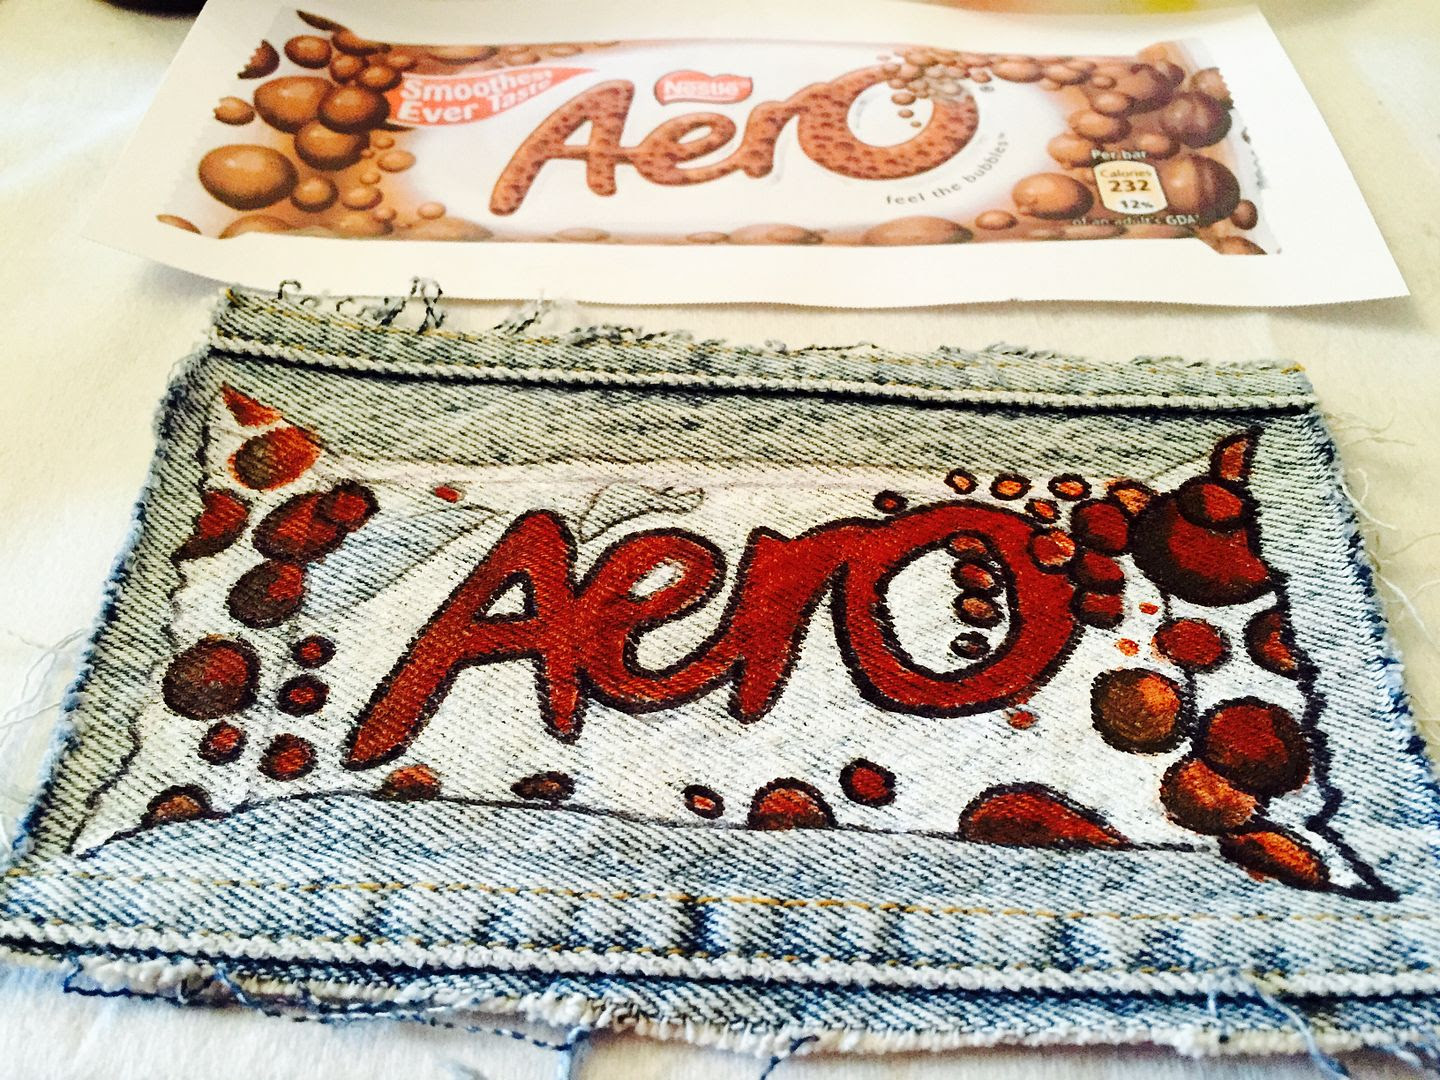 photo Aero 4x6-beckermanblog-chocolate bar jeans- beckermandiy-commonthread-chocolate day_zpsjcuoy7mn.jpg